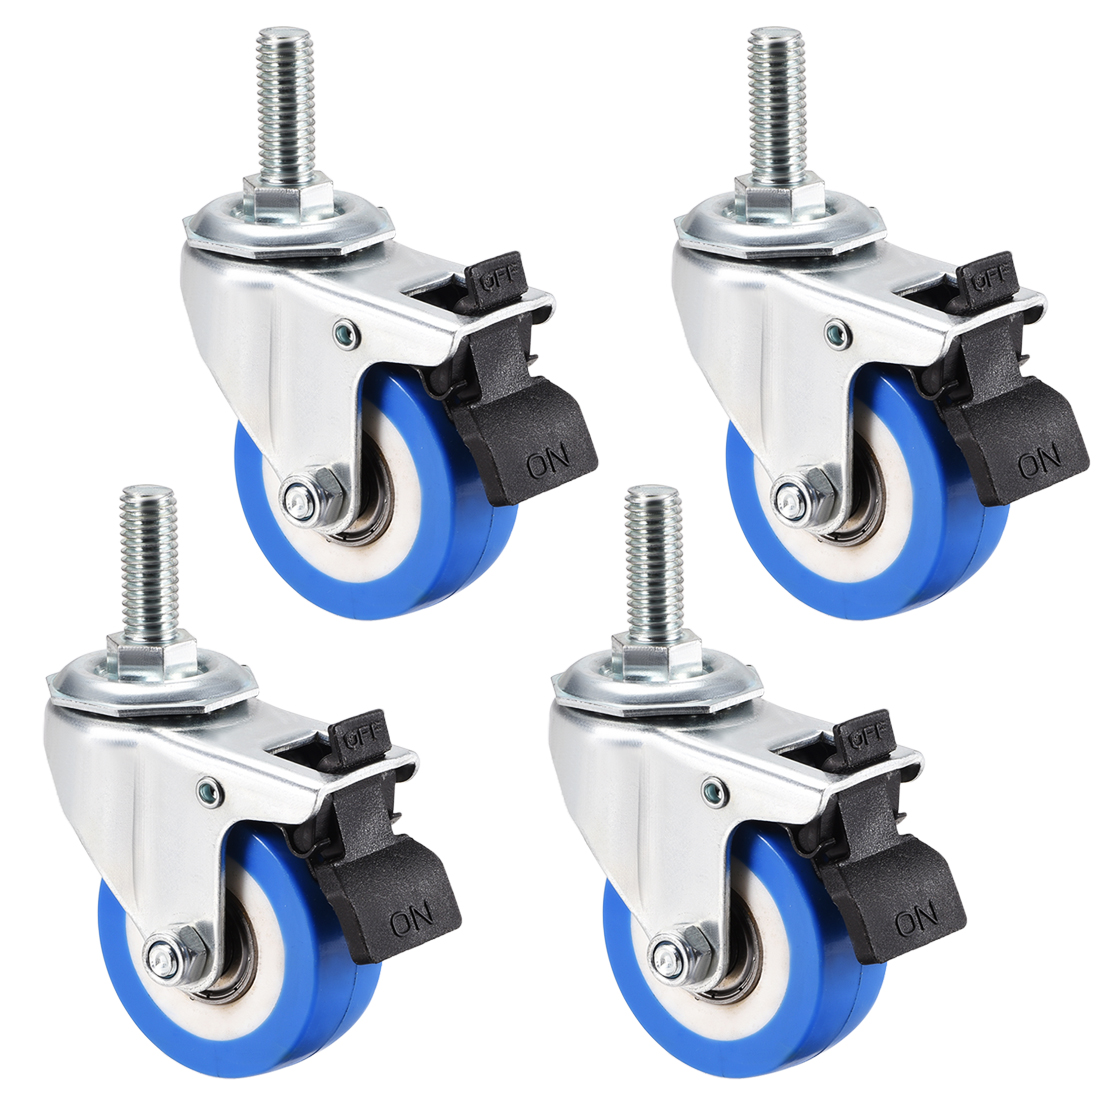 Swivel Caster Wheels PU Caster 2 Inch Wheel M10 x 25mm Thread with Brake , 4pcs